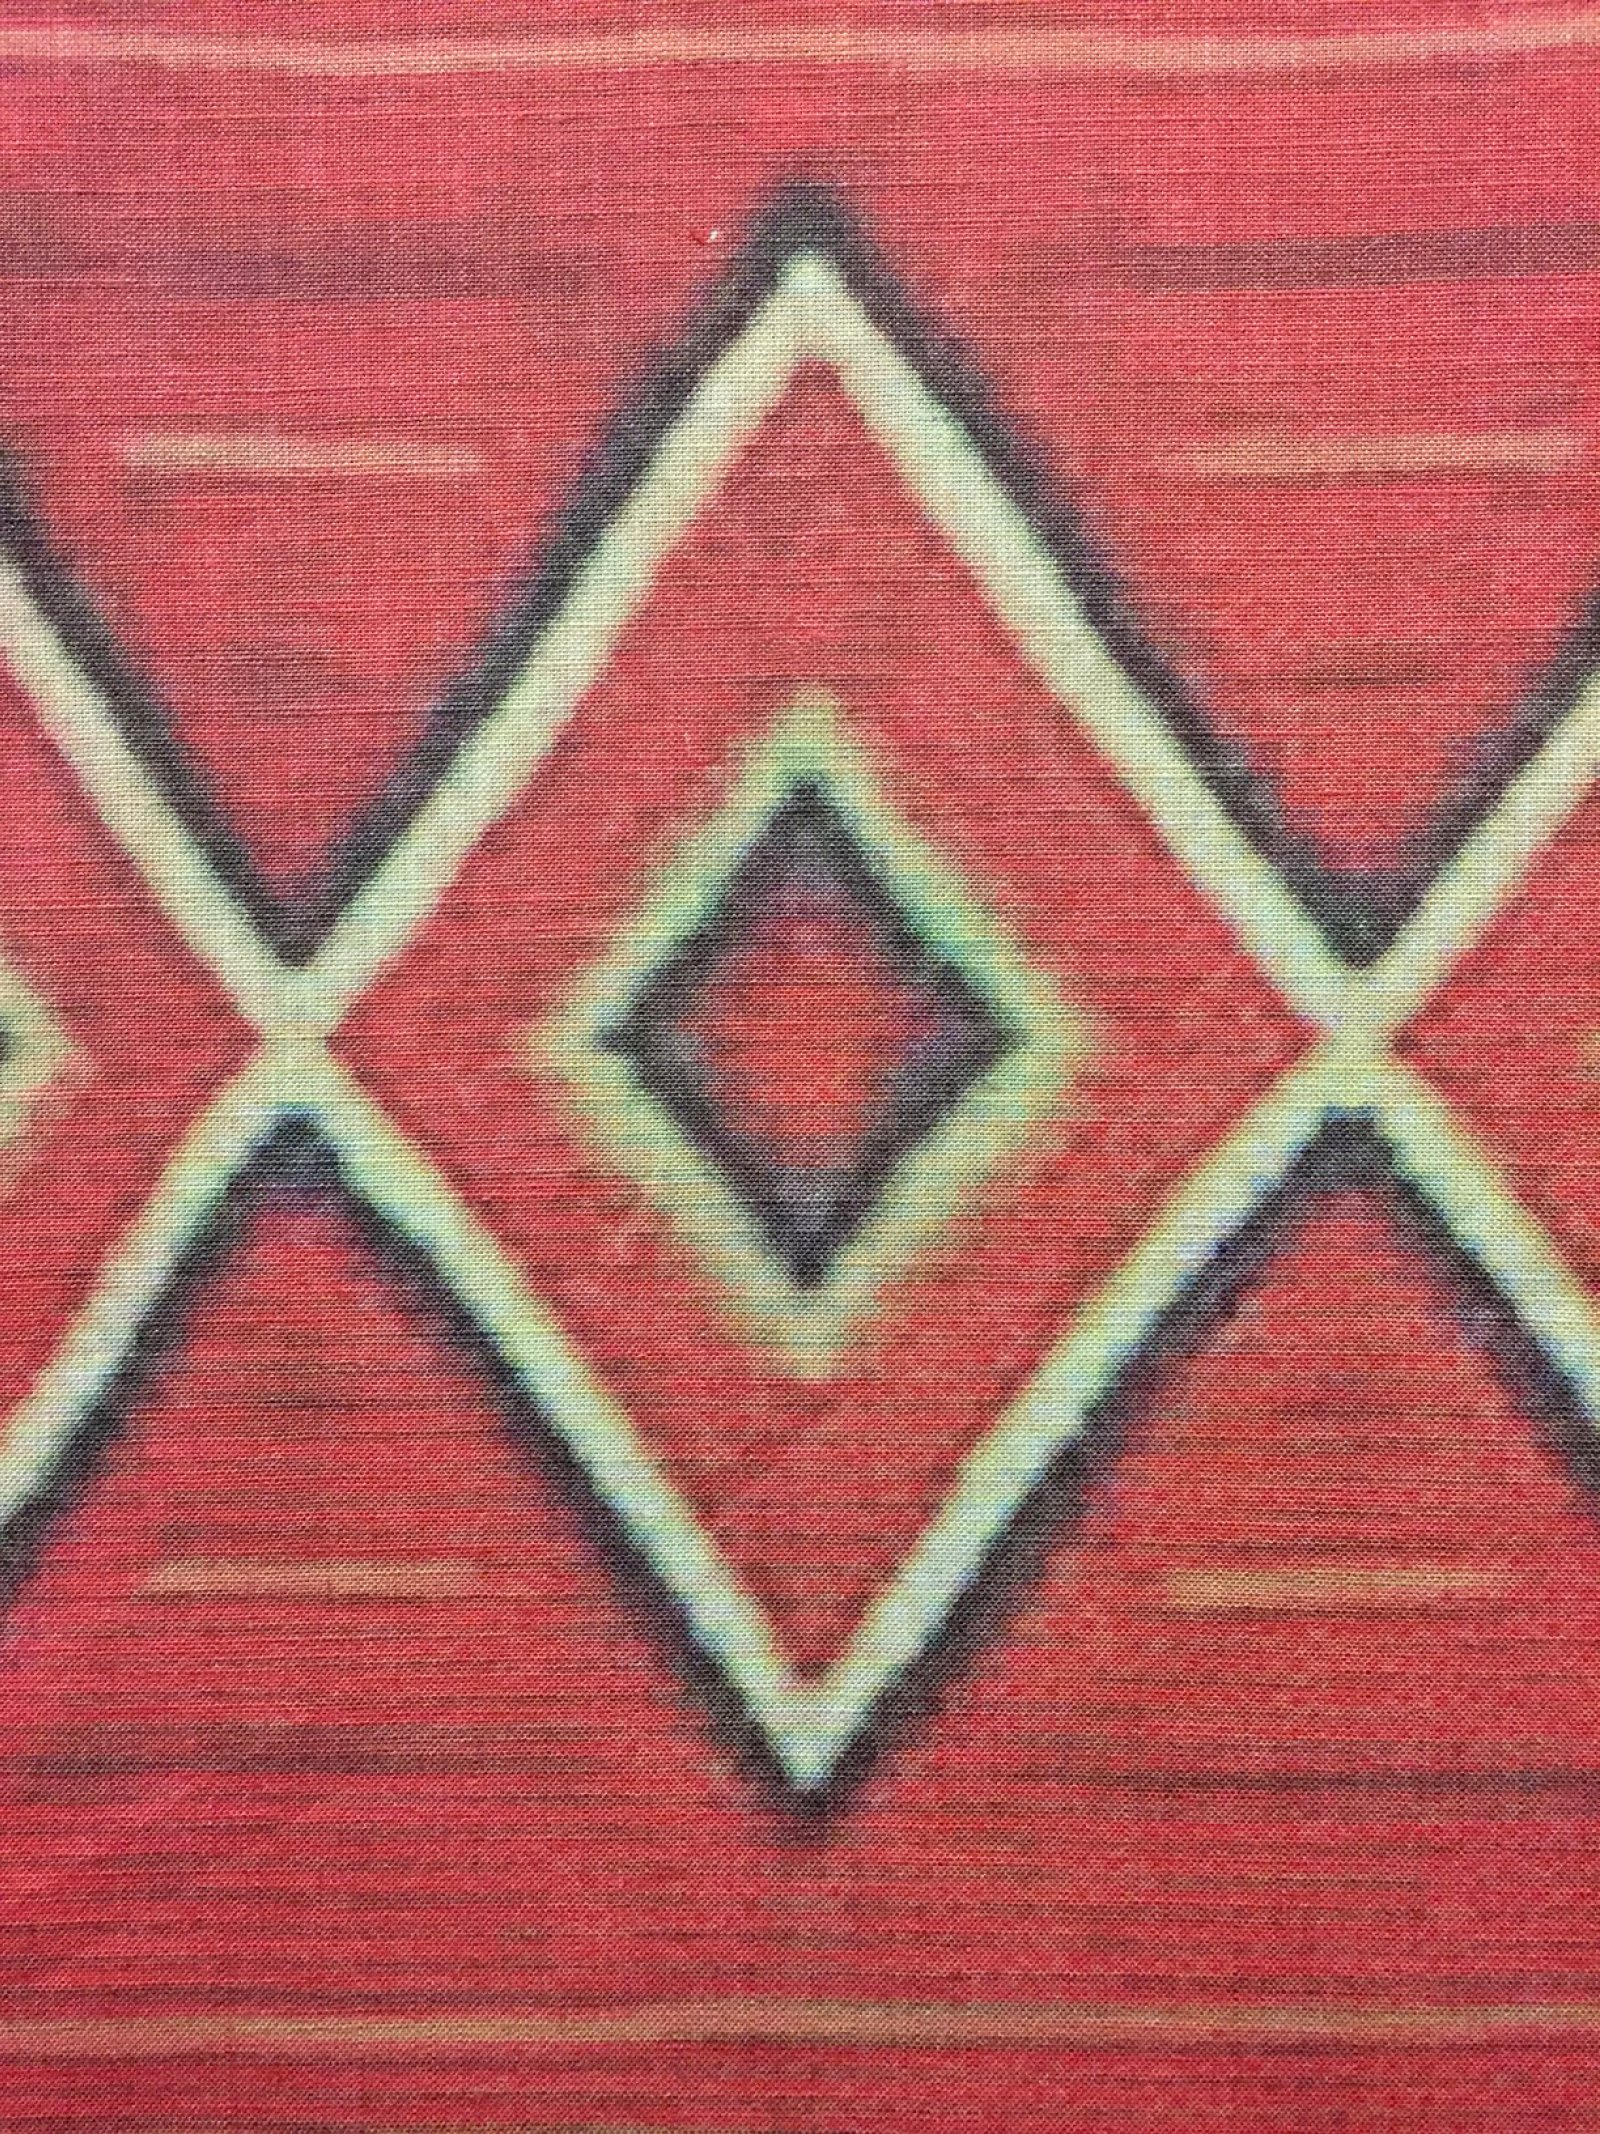 Duane Linklater, UMFA1978.169 (detail), 2015, inkjet print on linen, nails, from Navajo Serape, Utah Museum of Fine Arts Collection, 85 x 44 in. (216 x 112 cm)